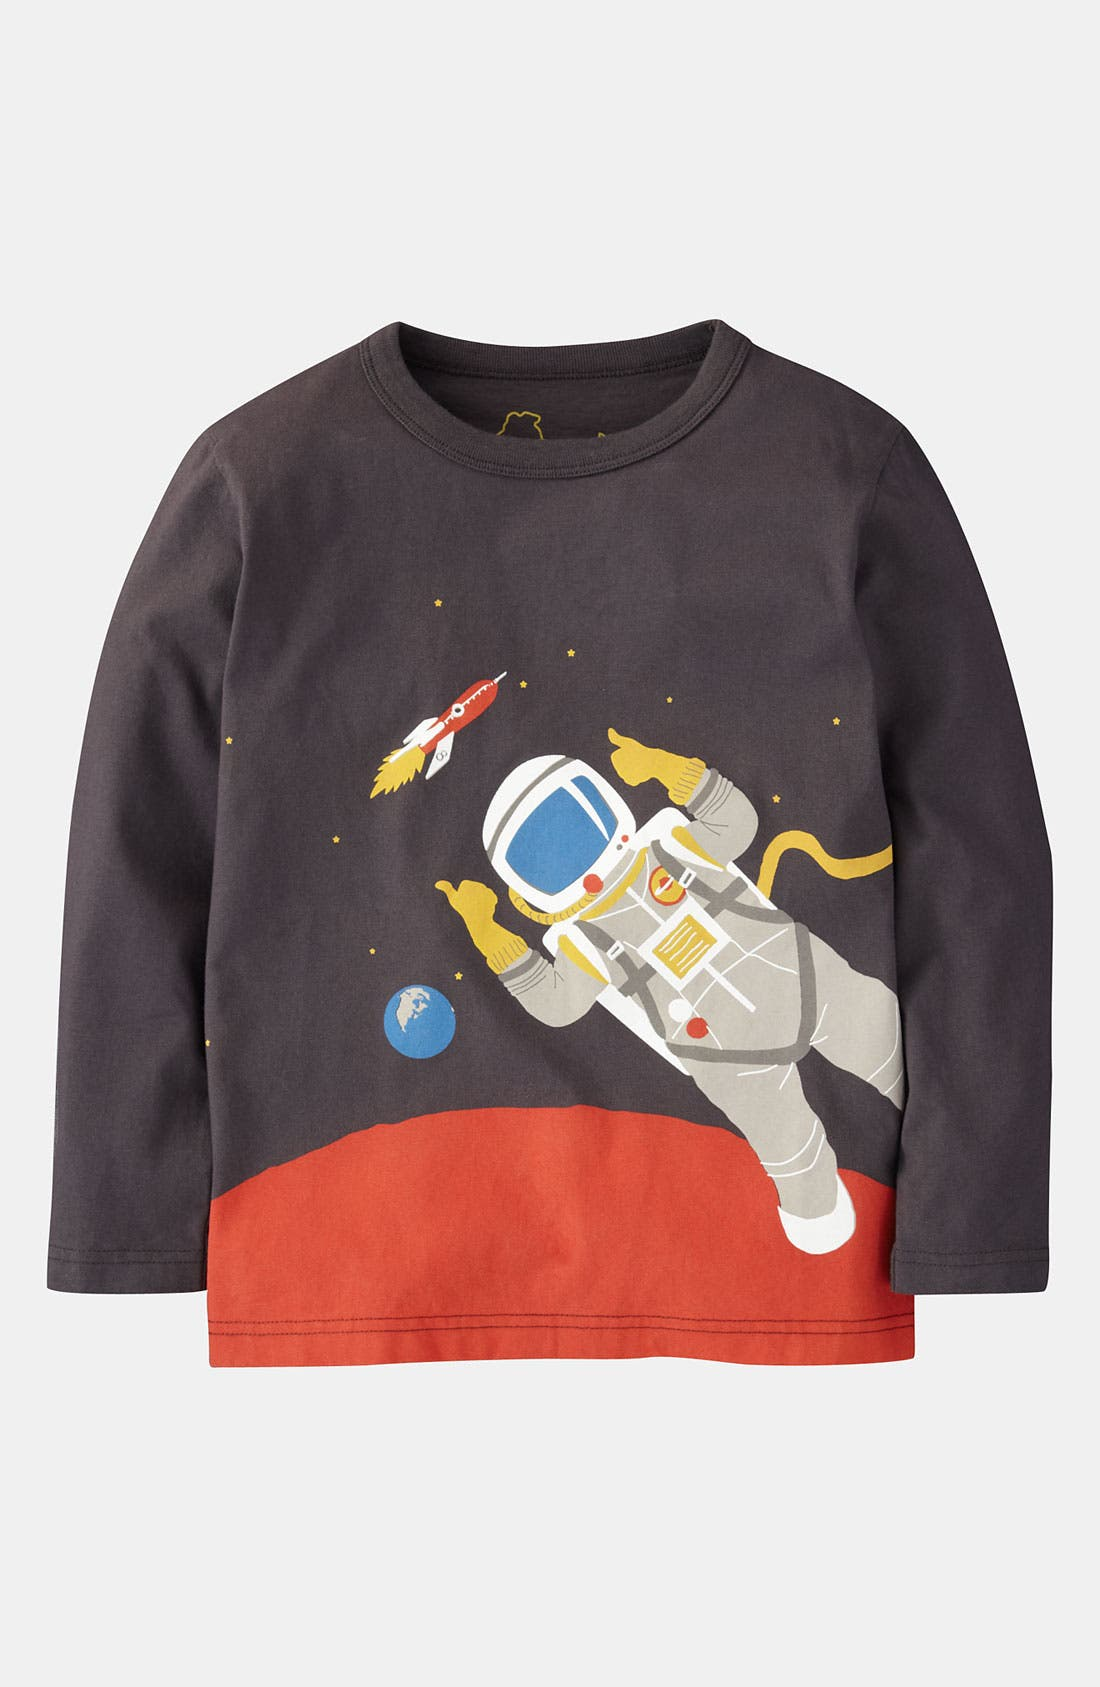 Alternate Image 1 Selected - Mini Boden 'Exploration' T-Shirt (Toddler)